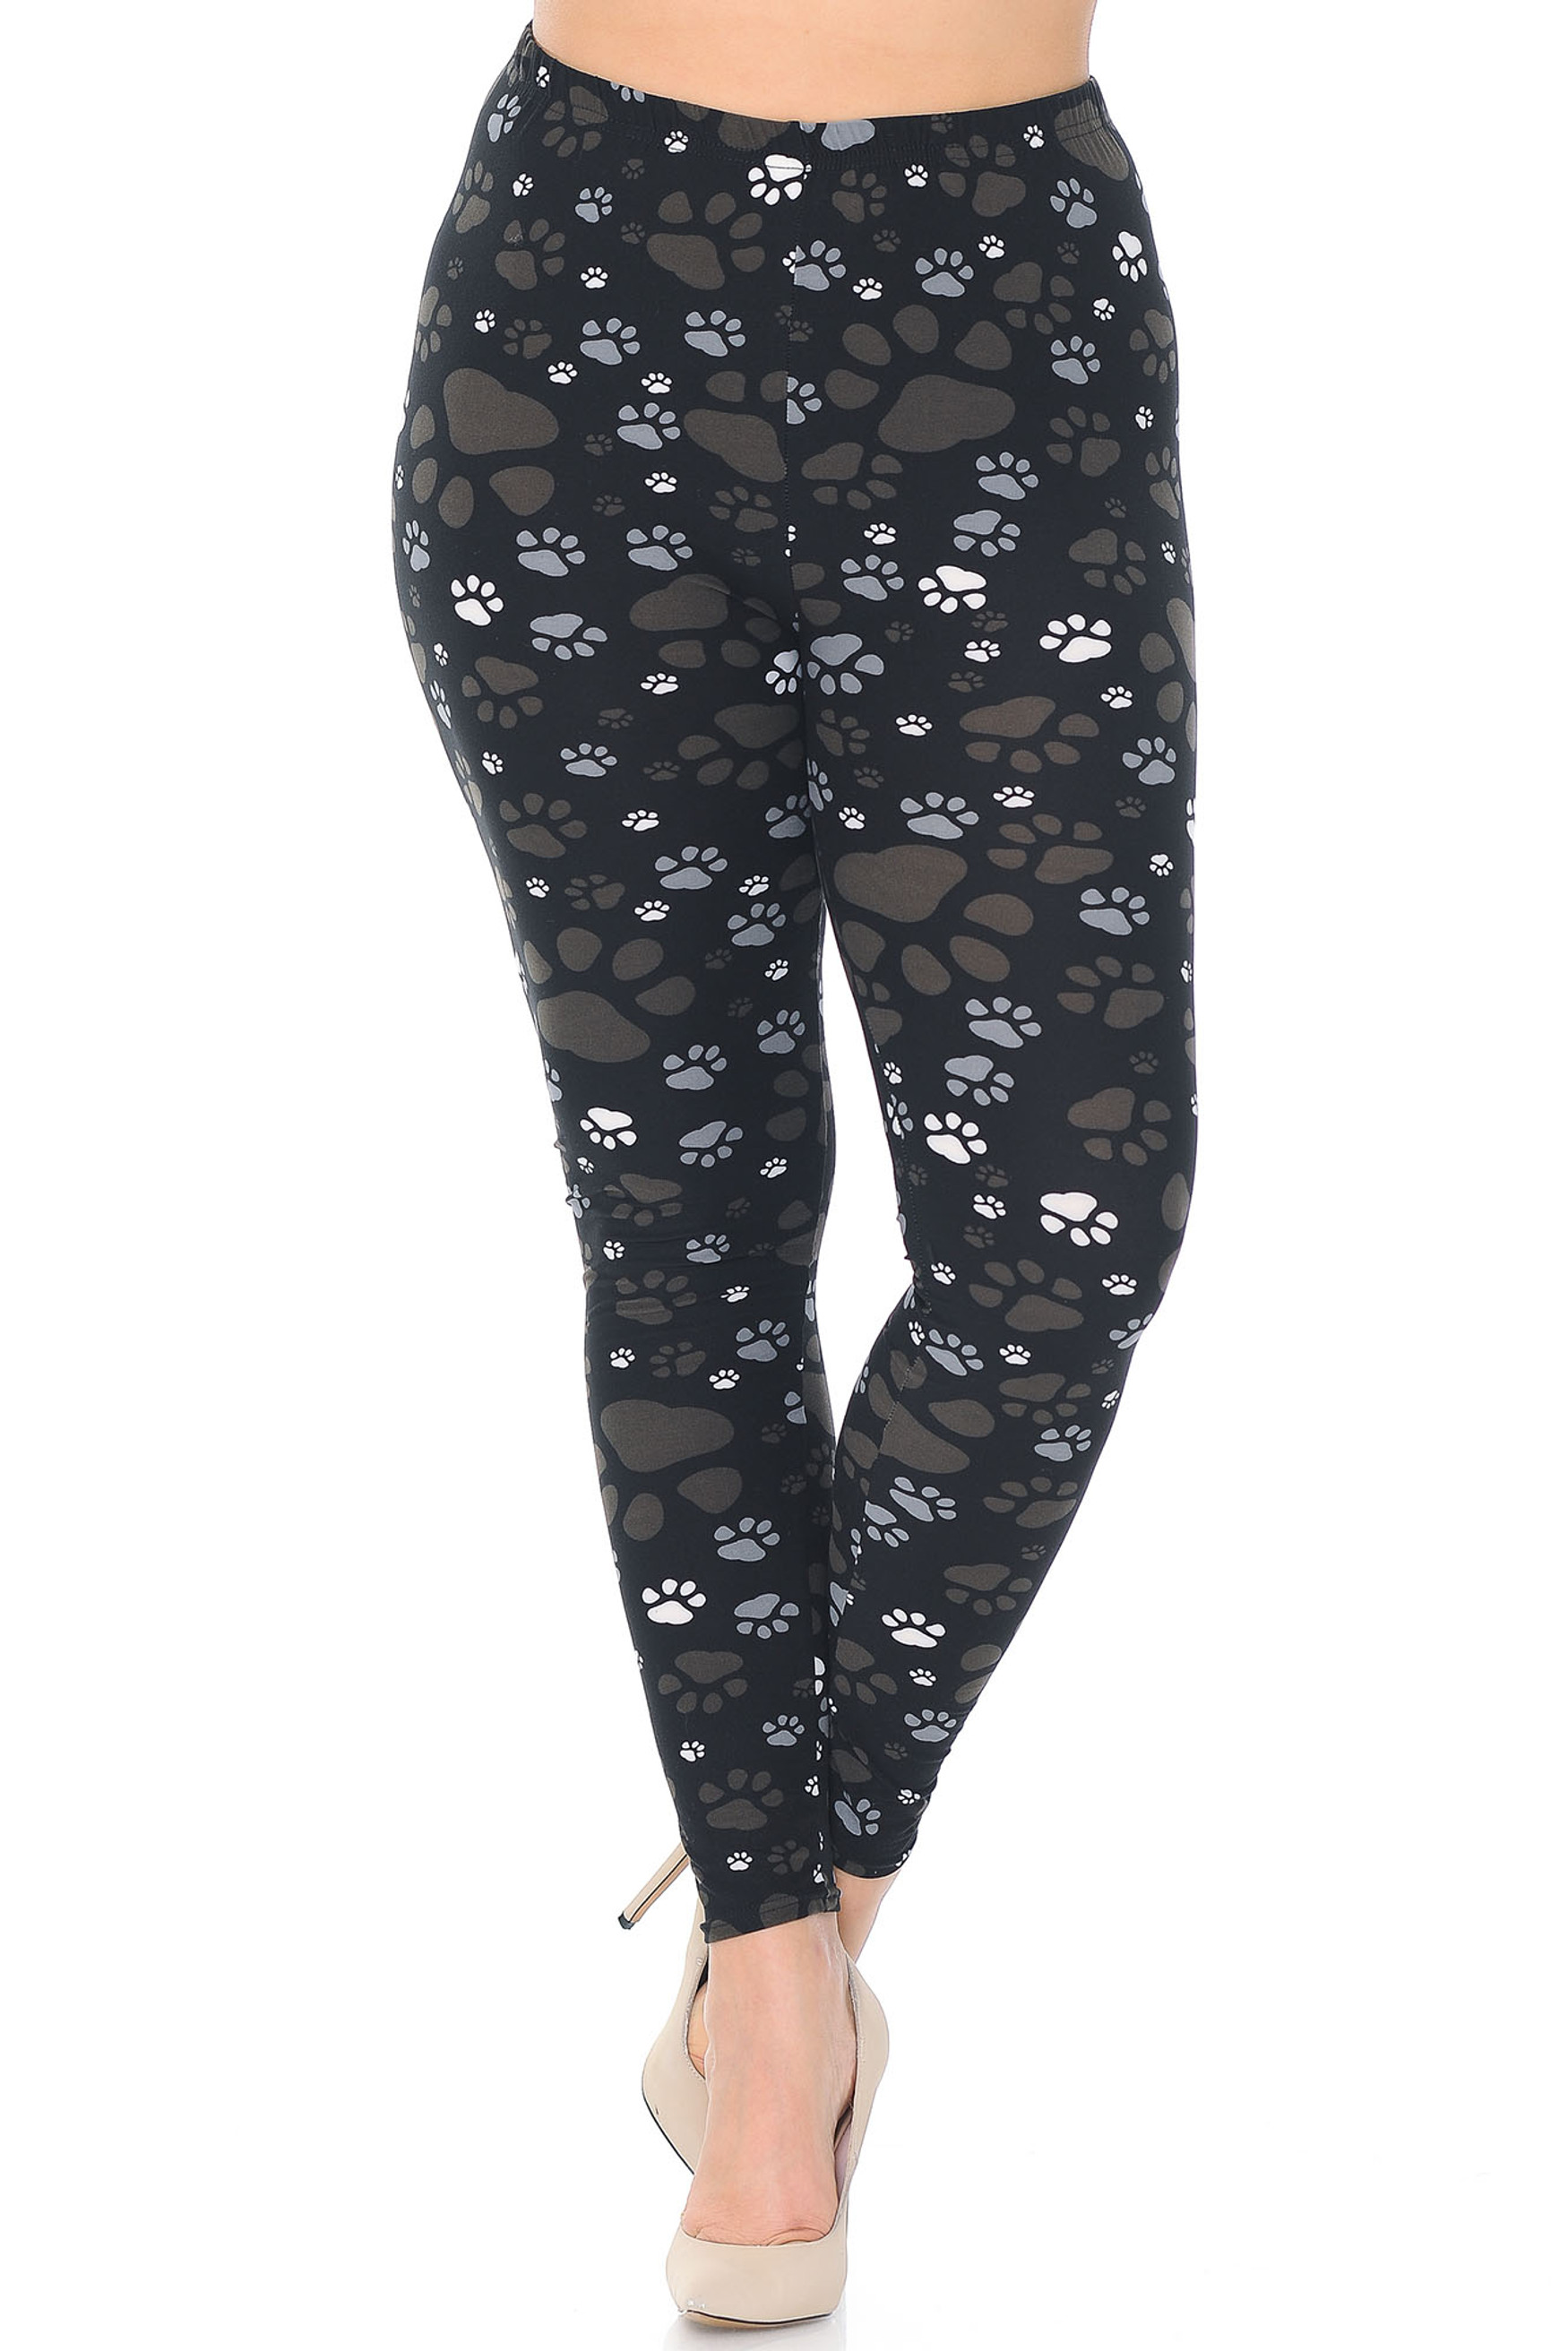 Front of Creamy Soft Muddy Paw Print Extra Plus Size Leggings - 3X-5X - USA Fashion™